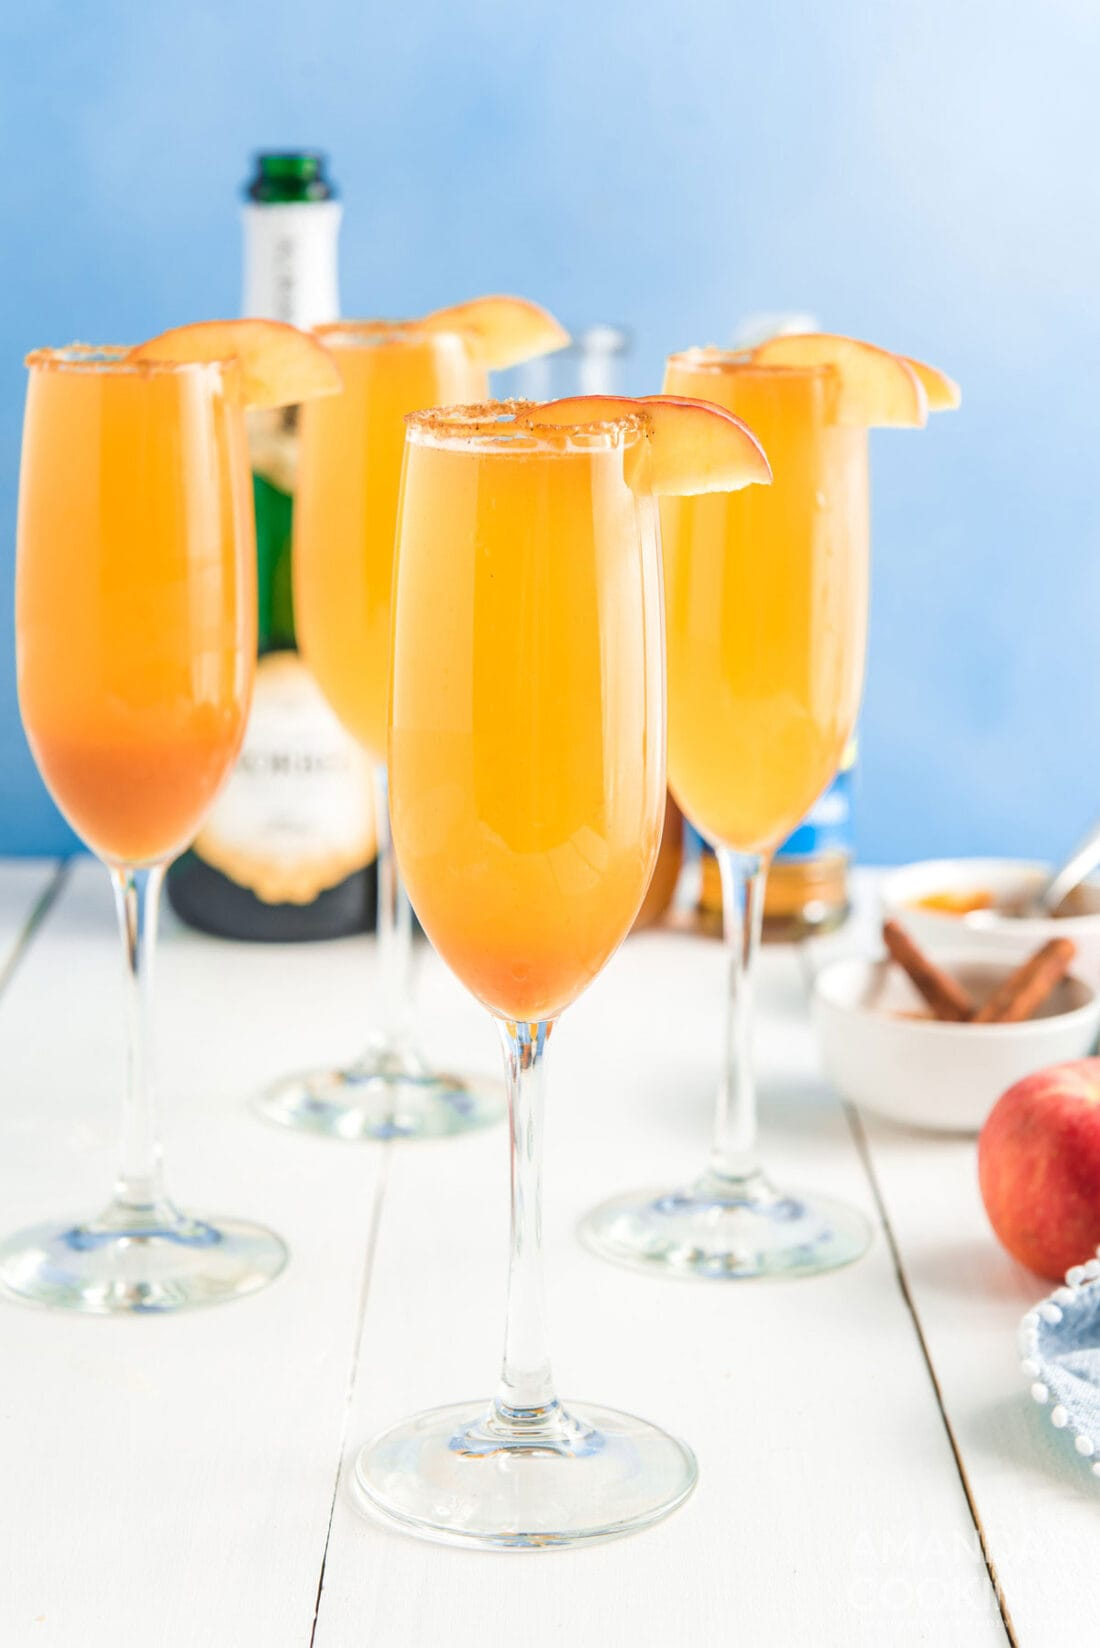 4 GLASSES OF CARAMEL APPLE MIMOSAS